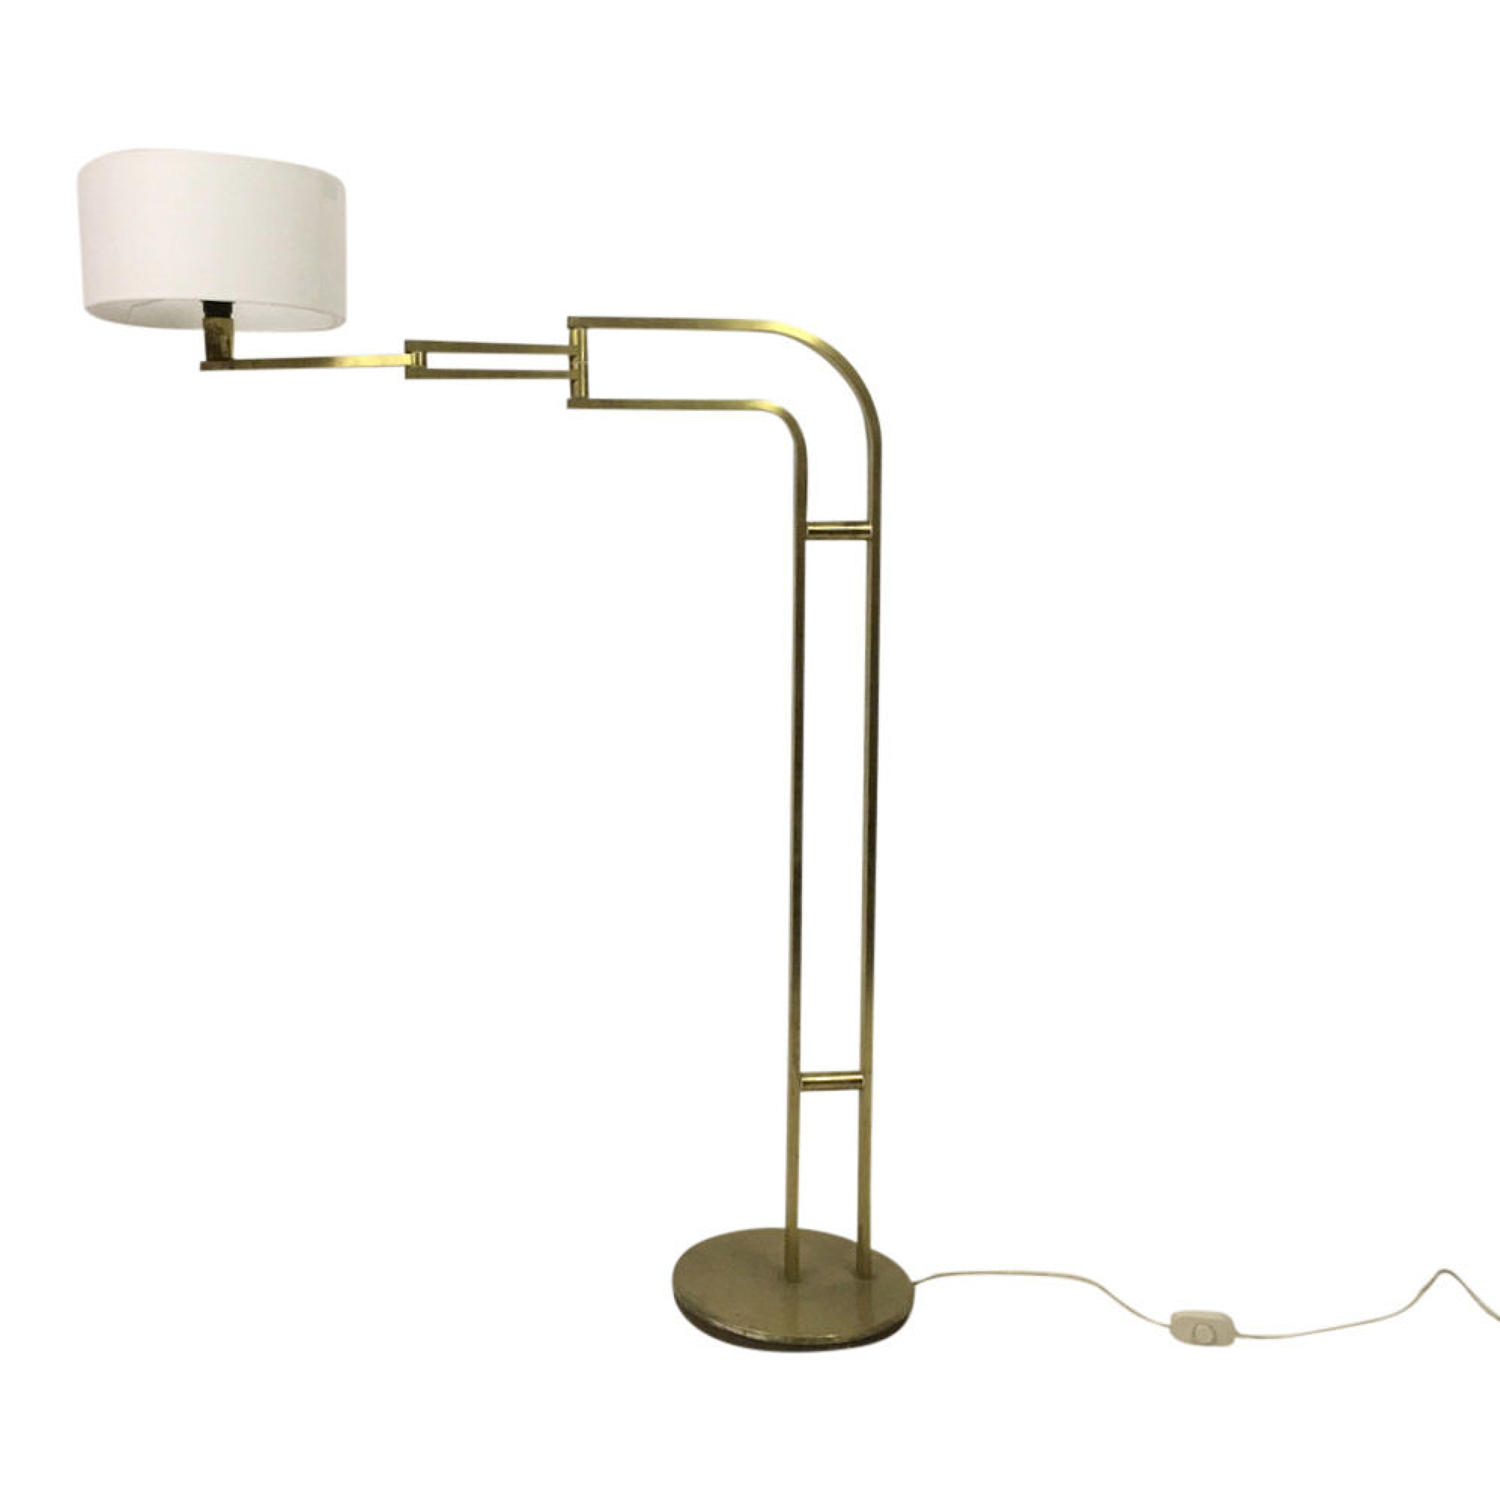 1970s Italian brass swing floor lamp by Reggiani